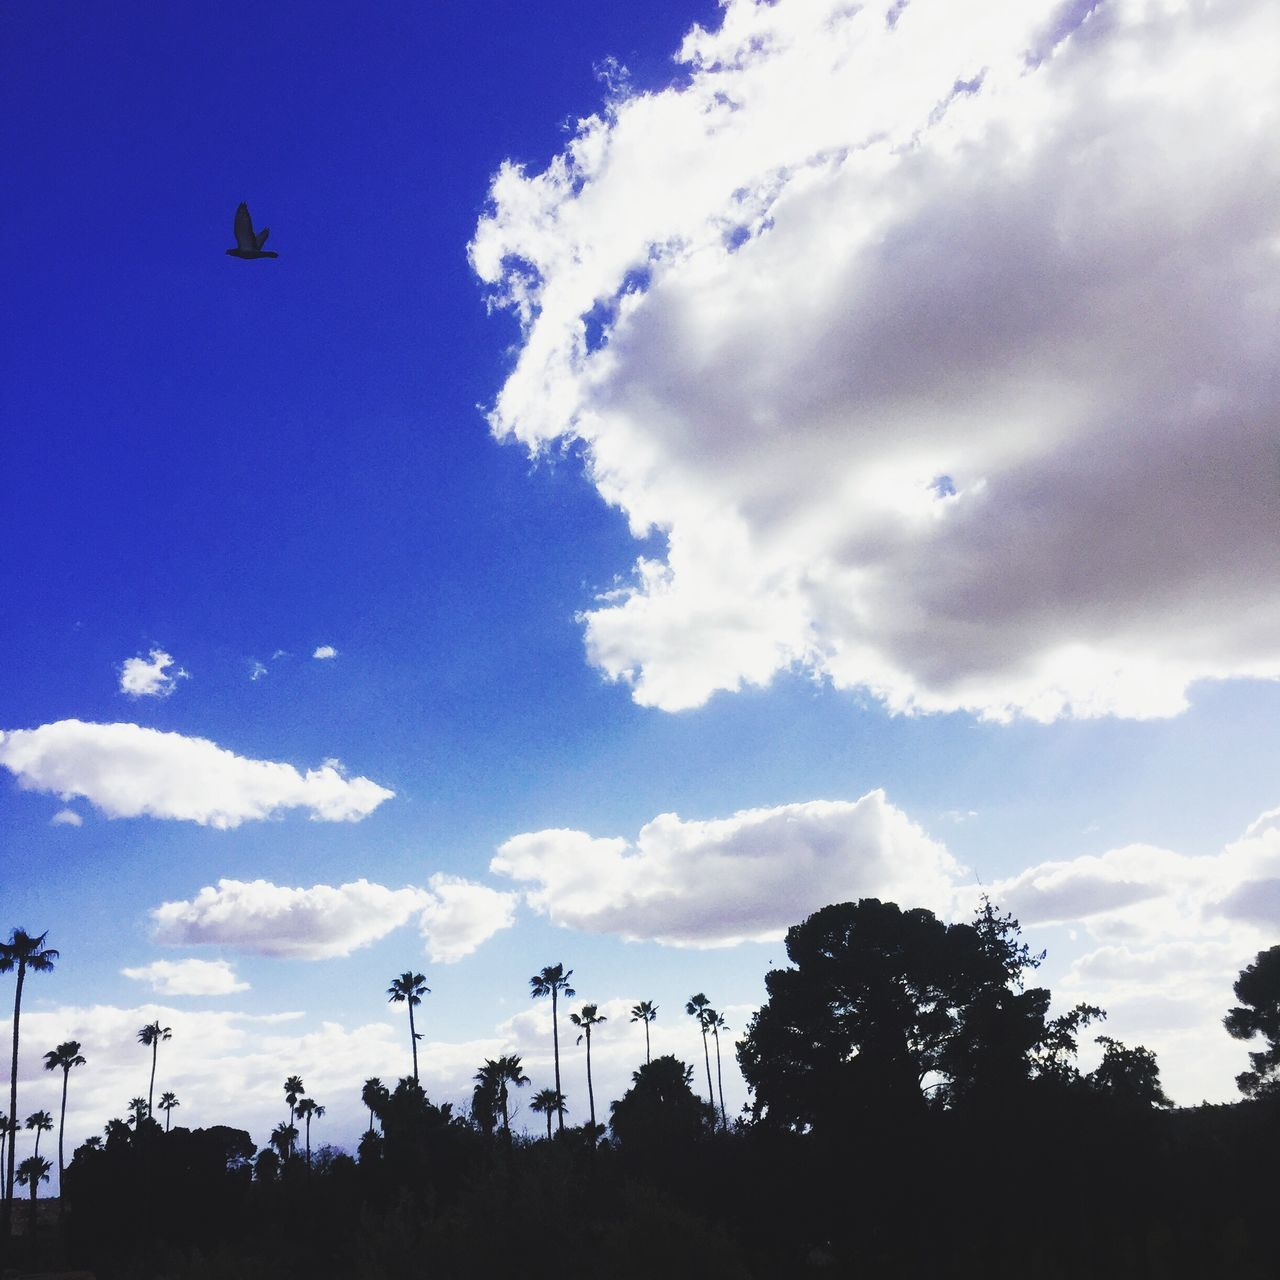 Sky Cloud - Sky Low Angle View Tree Silhouette Day Nature Beauty In Nature Outdoors Blue Scenics No People Marrakech